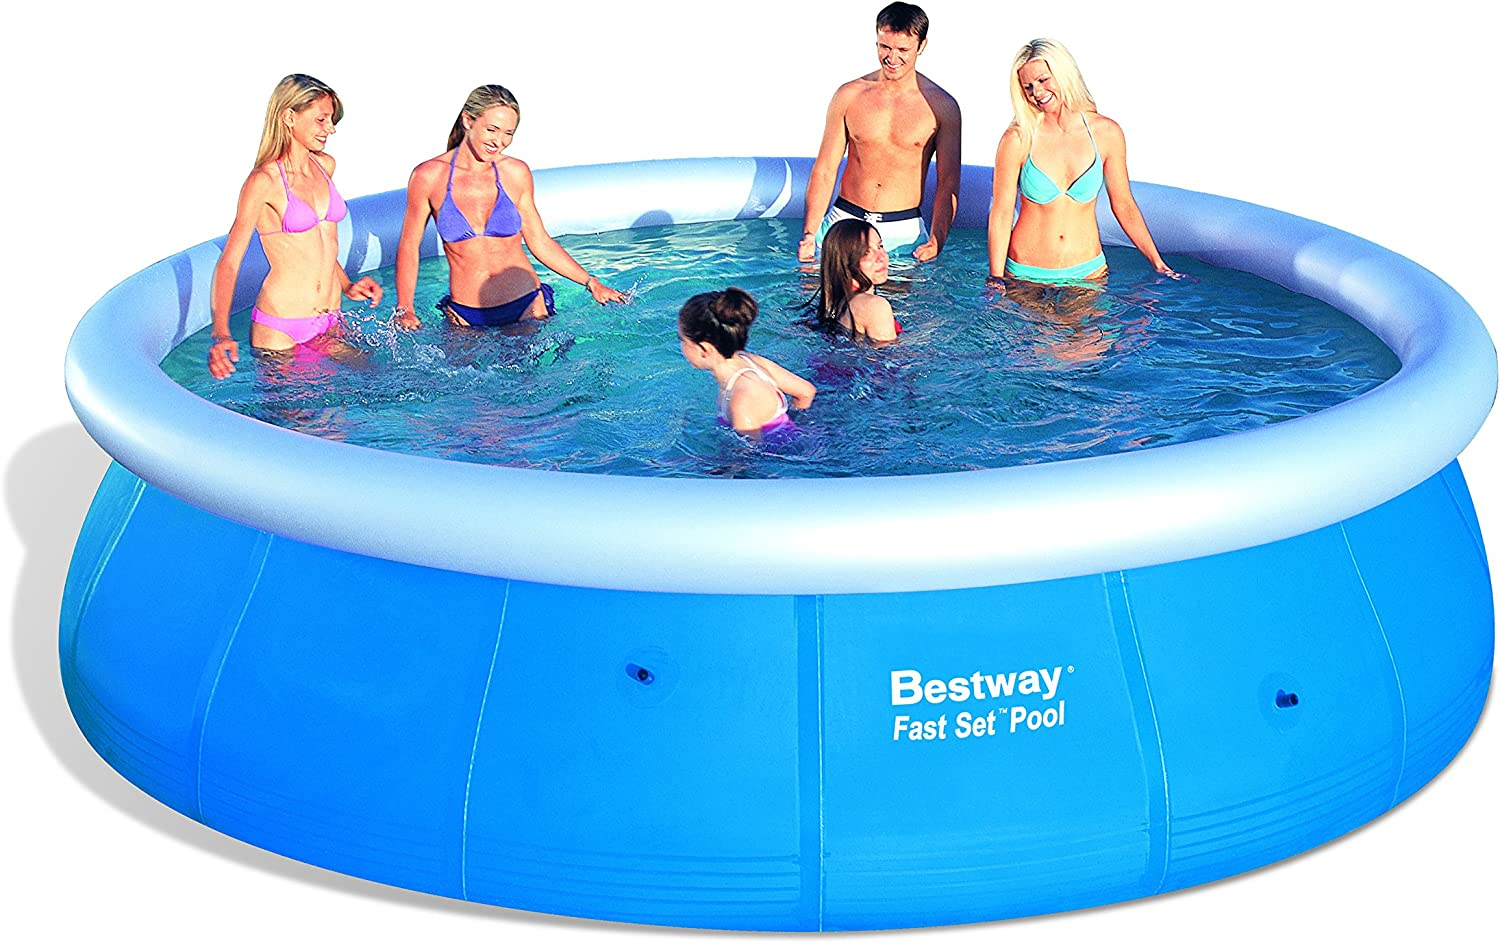 Bestway Fast Set - Piscina redonda, 457 x 107 cm: Amazon.es: Jardín